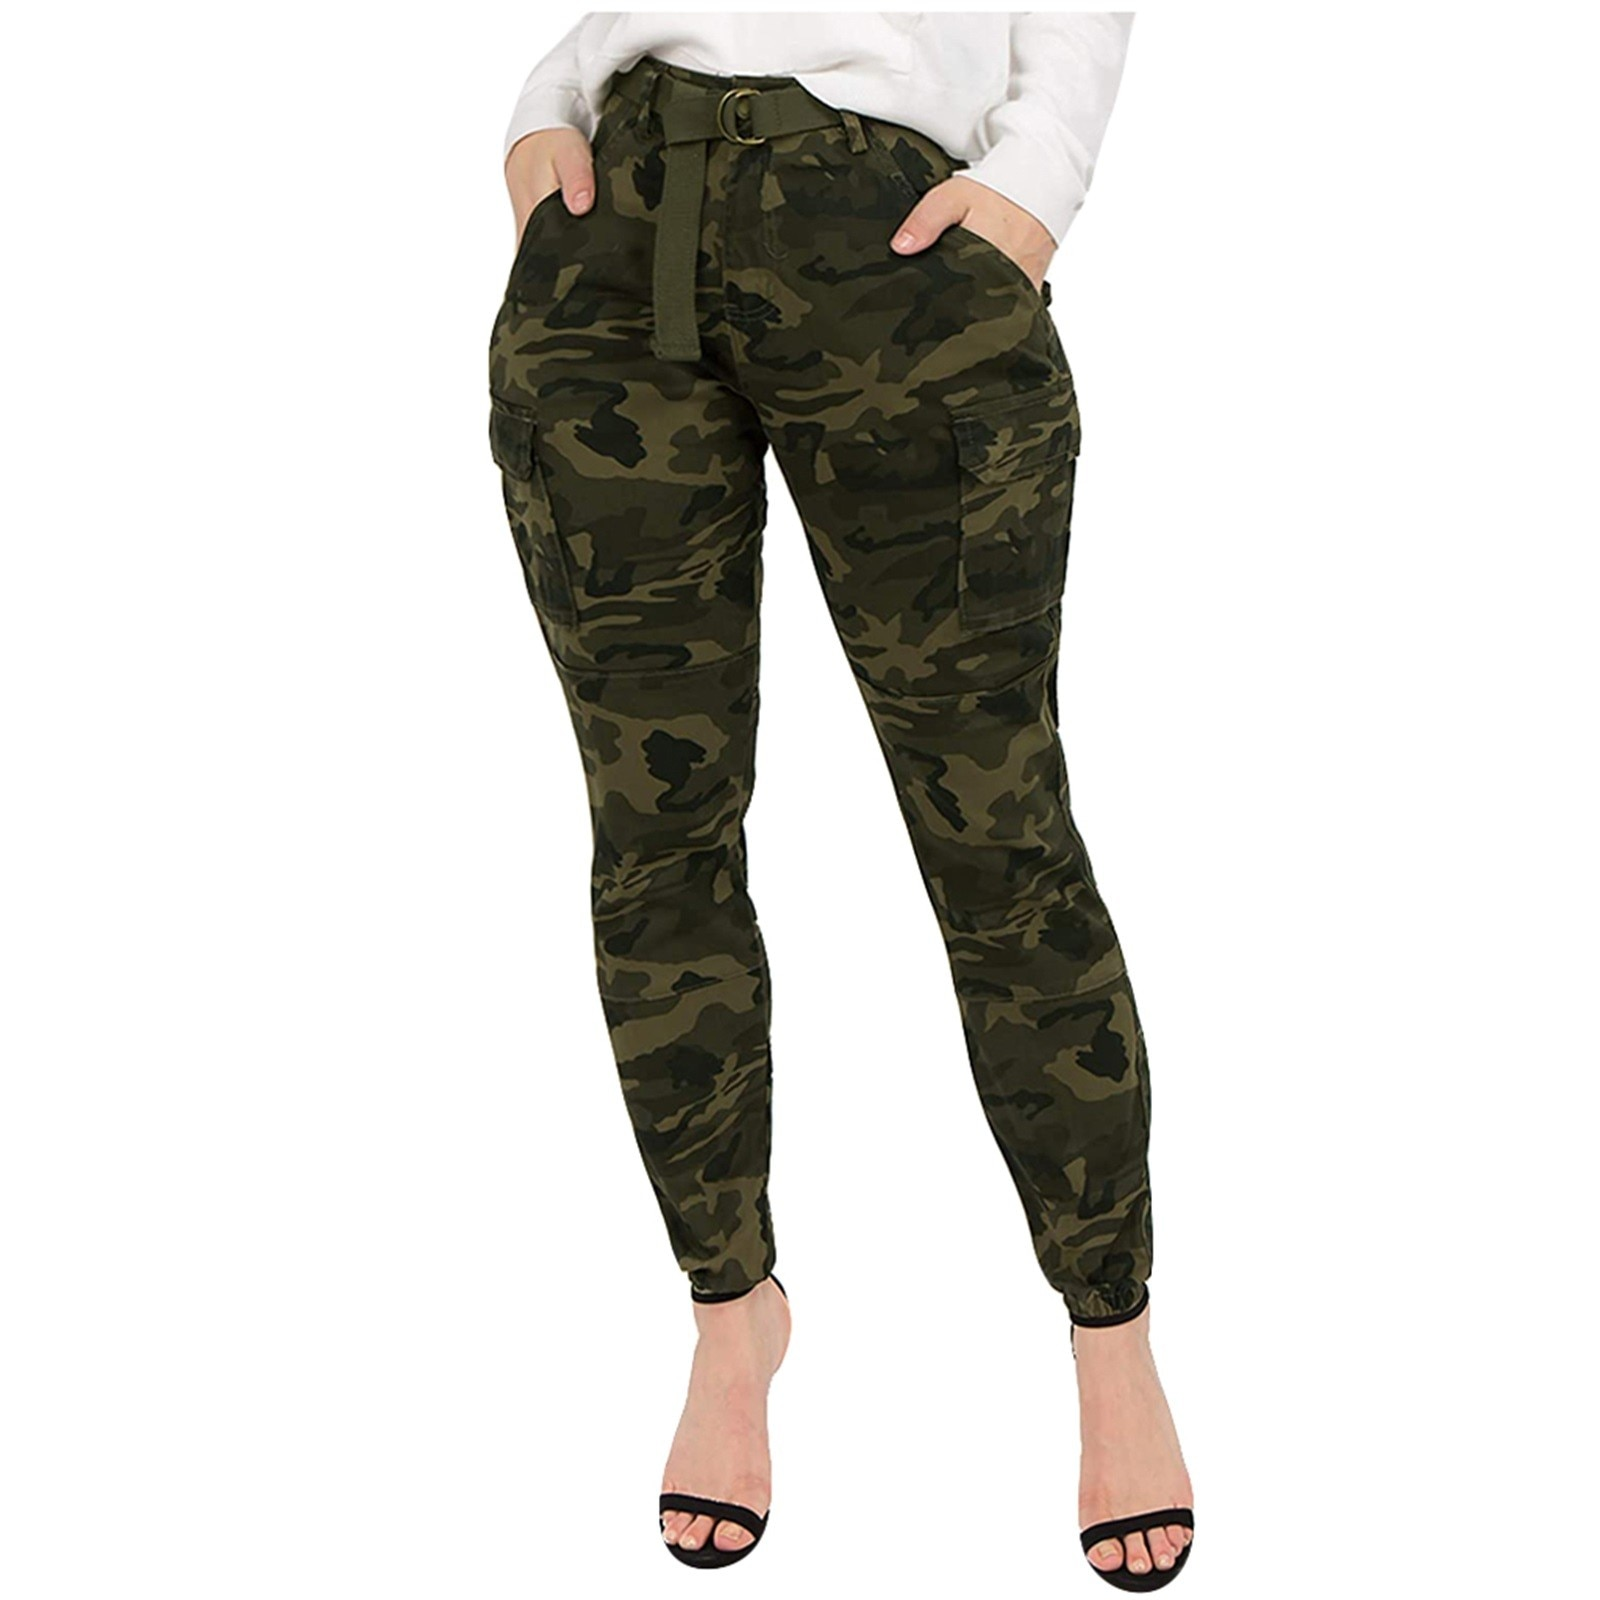 Womens Camouflaged leggings JOMOBabe Official Online Store   Women Gym Clothes & Workout Wear   JOMOBabe